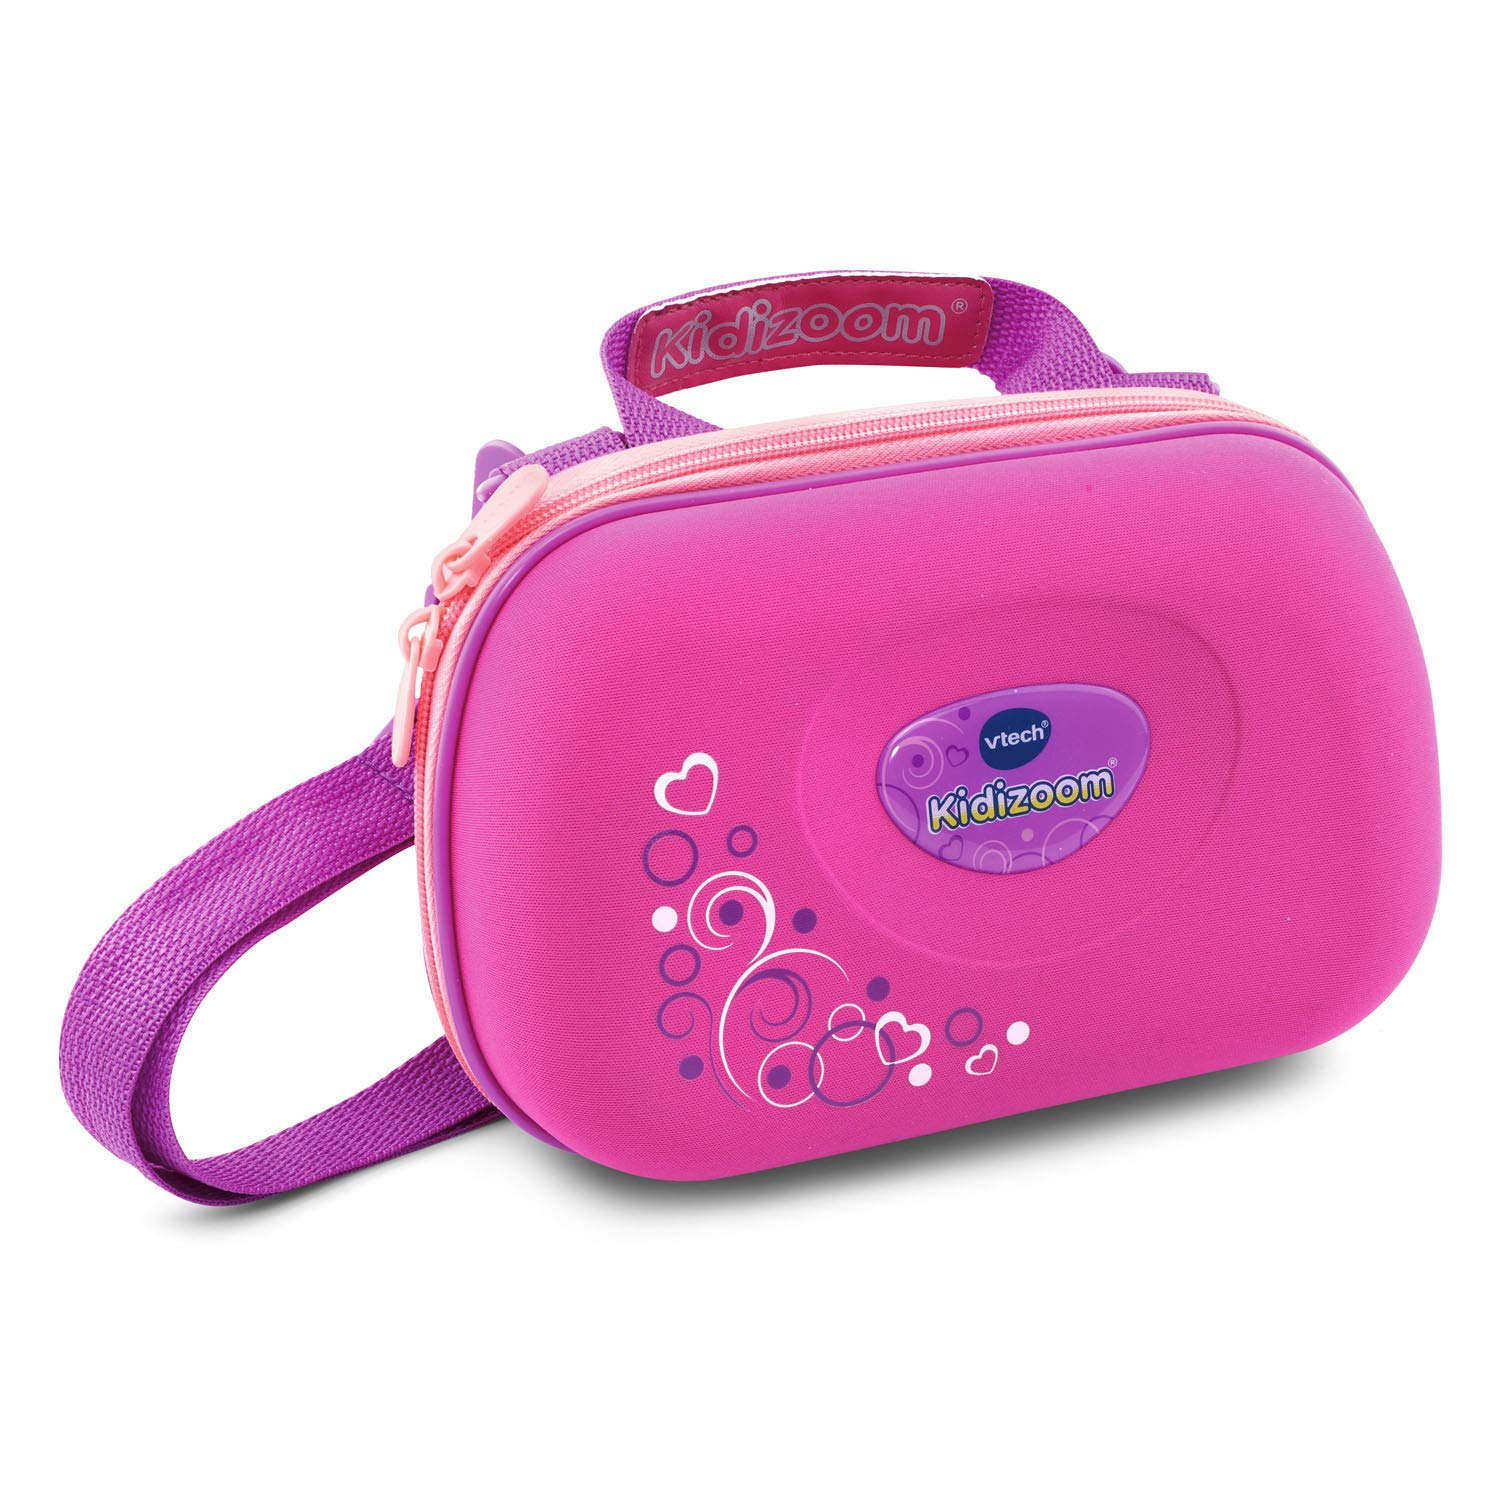 VTech Kidizoom Carrying Amazon Exclusive